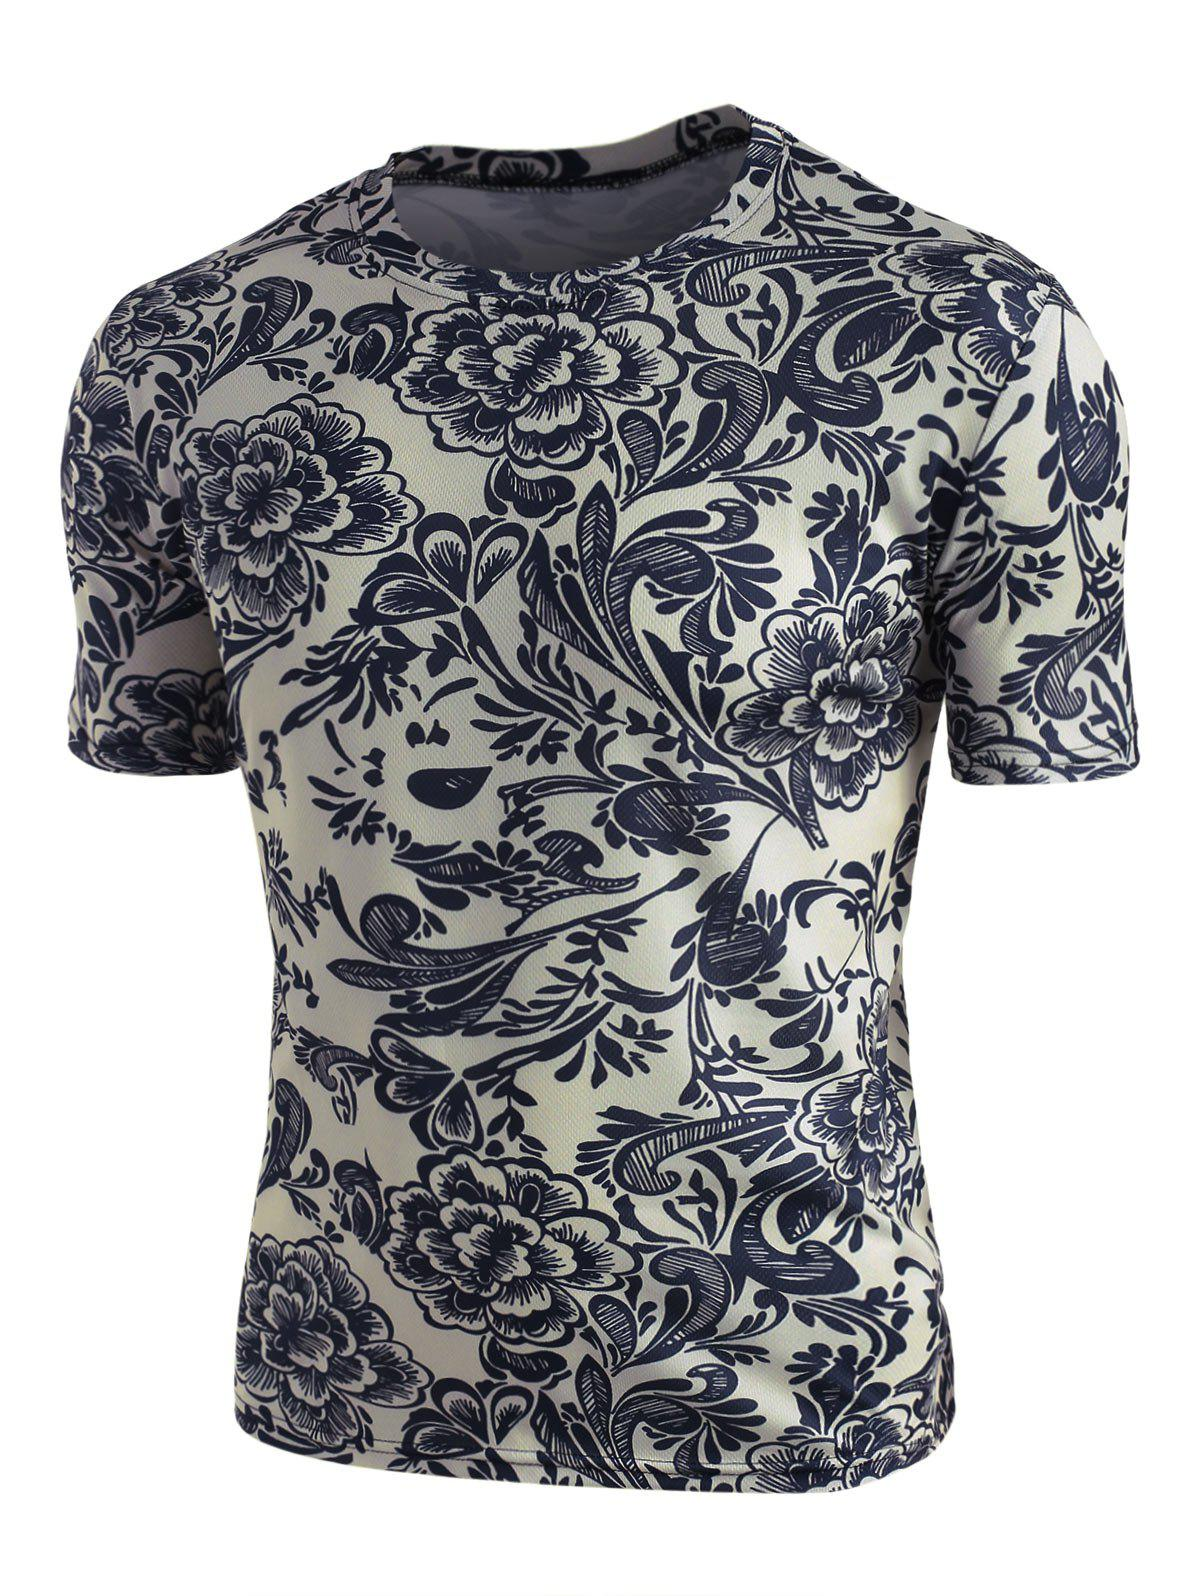 Retro Flower Print Crew Neck Short Sleeve Tee - PLATINUM M